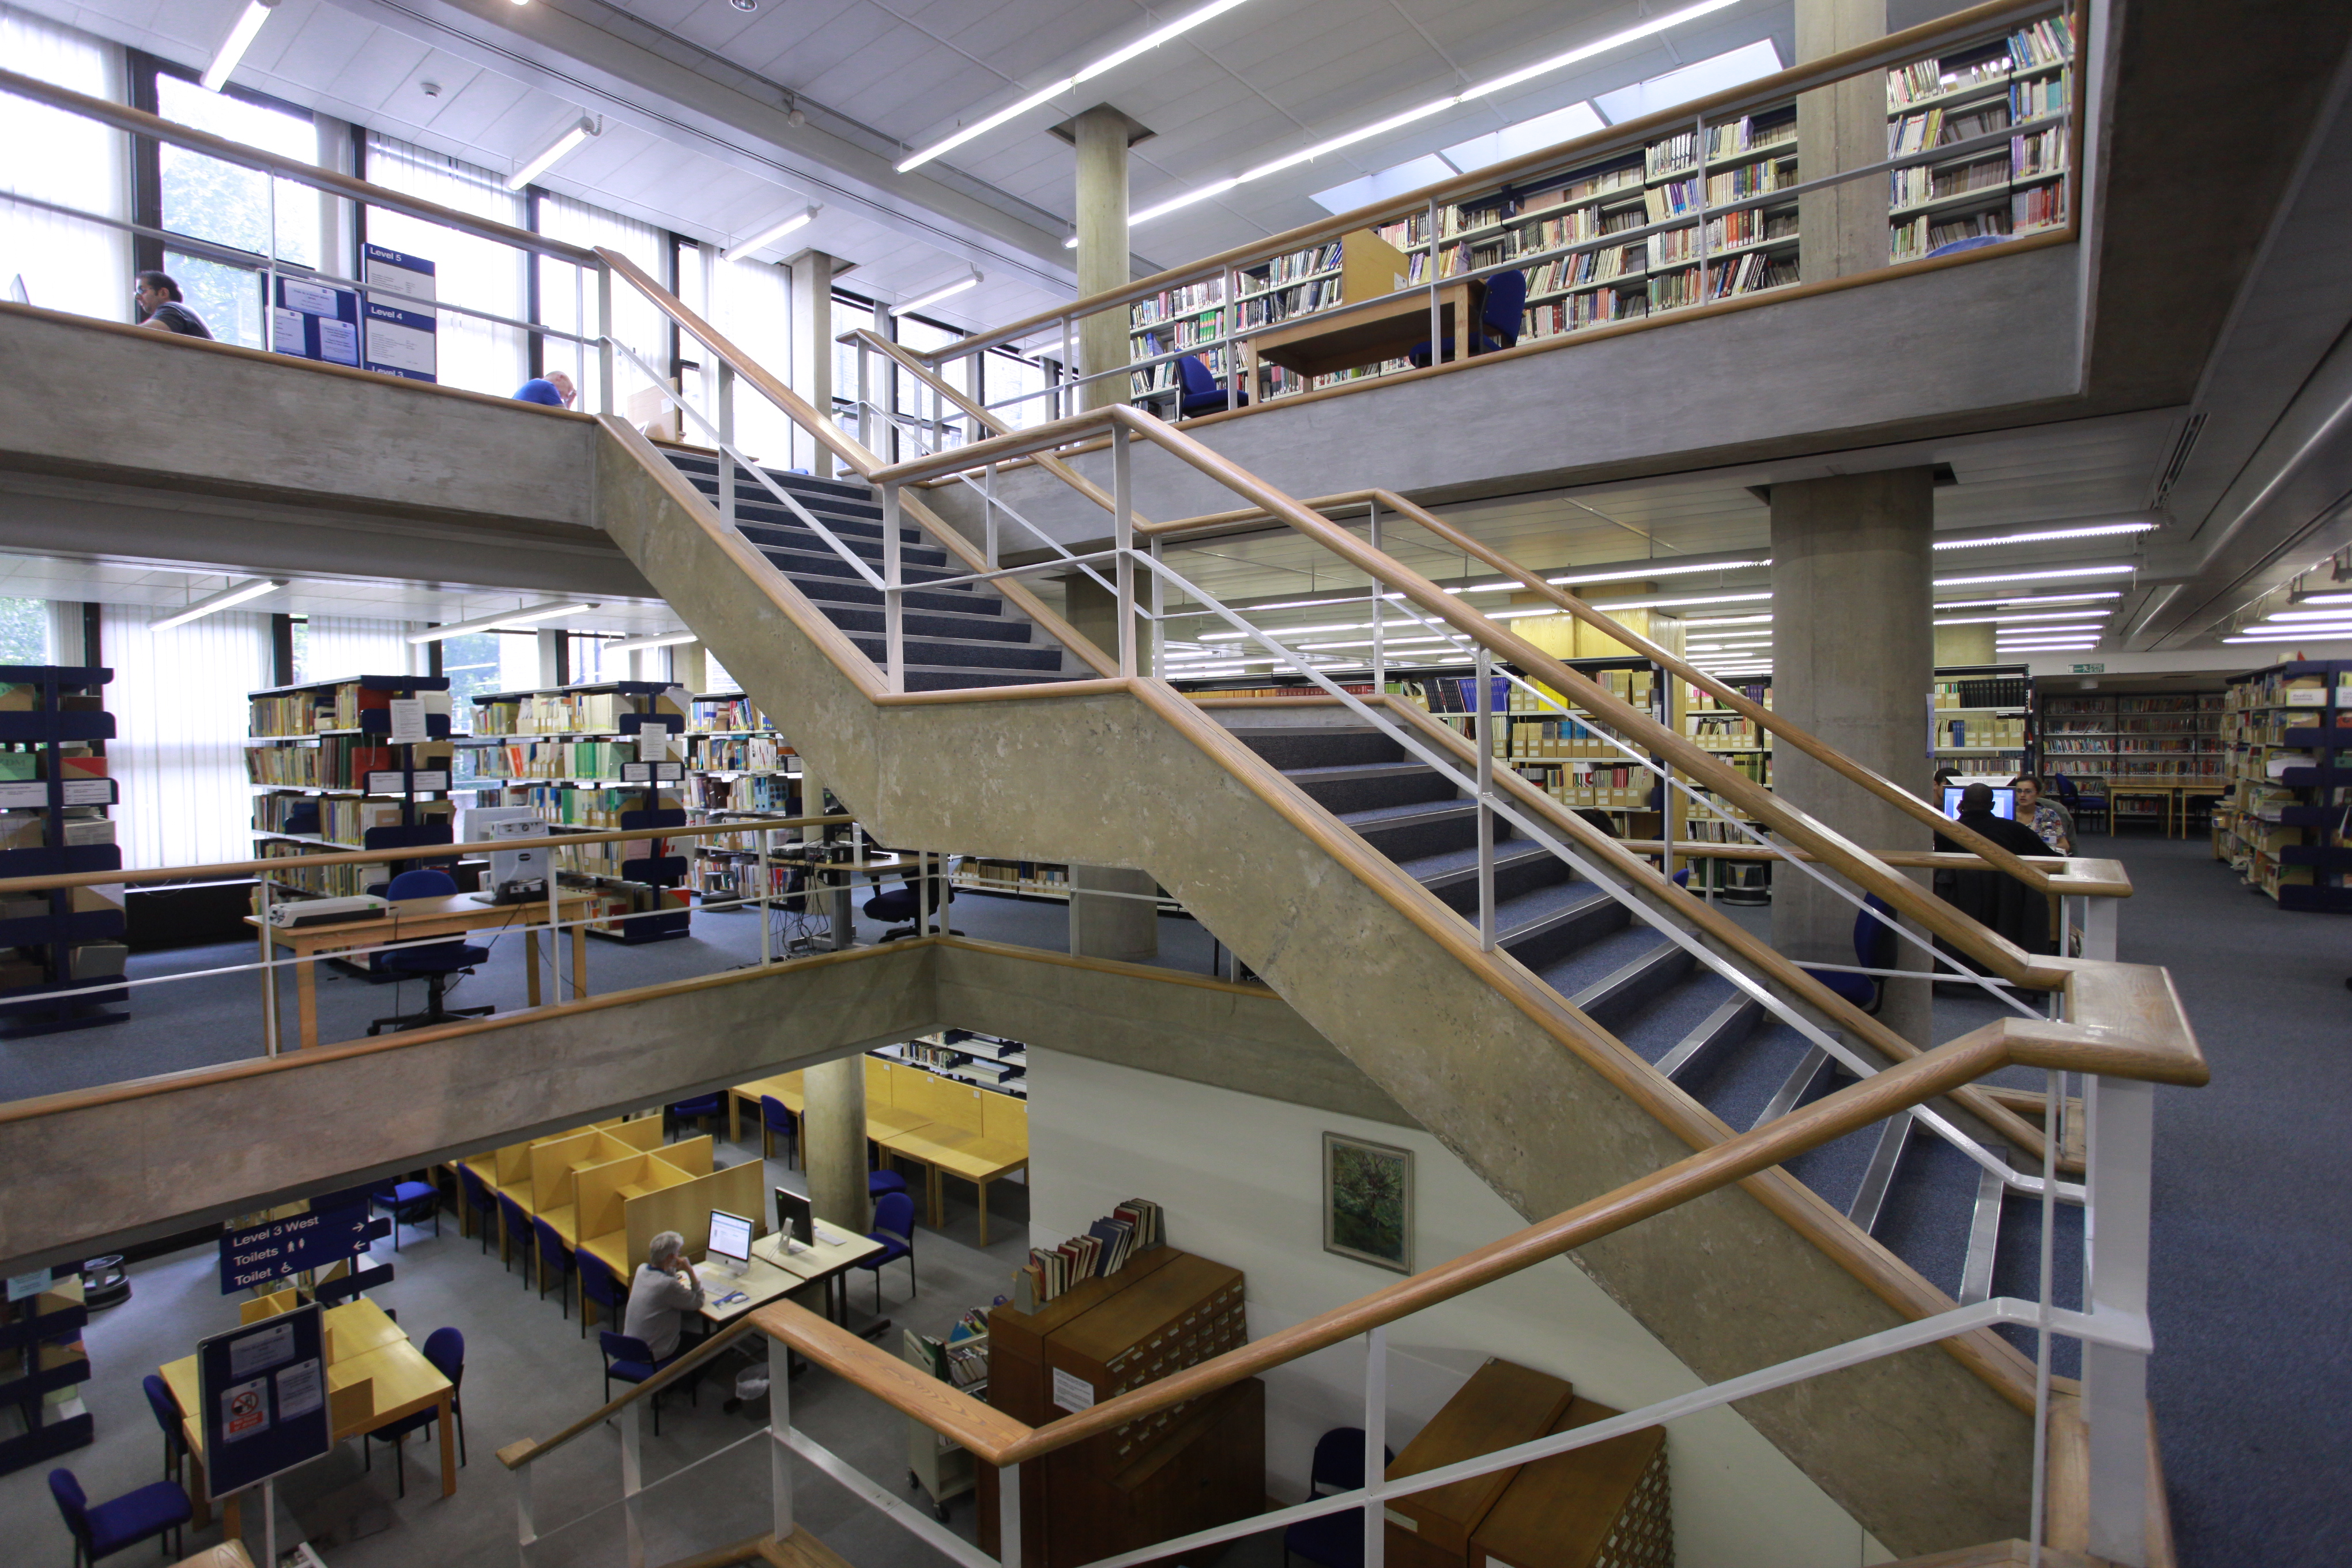 Photo of the main staircase in the IOE Library